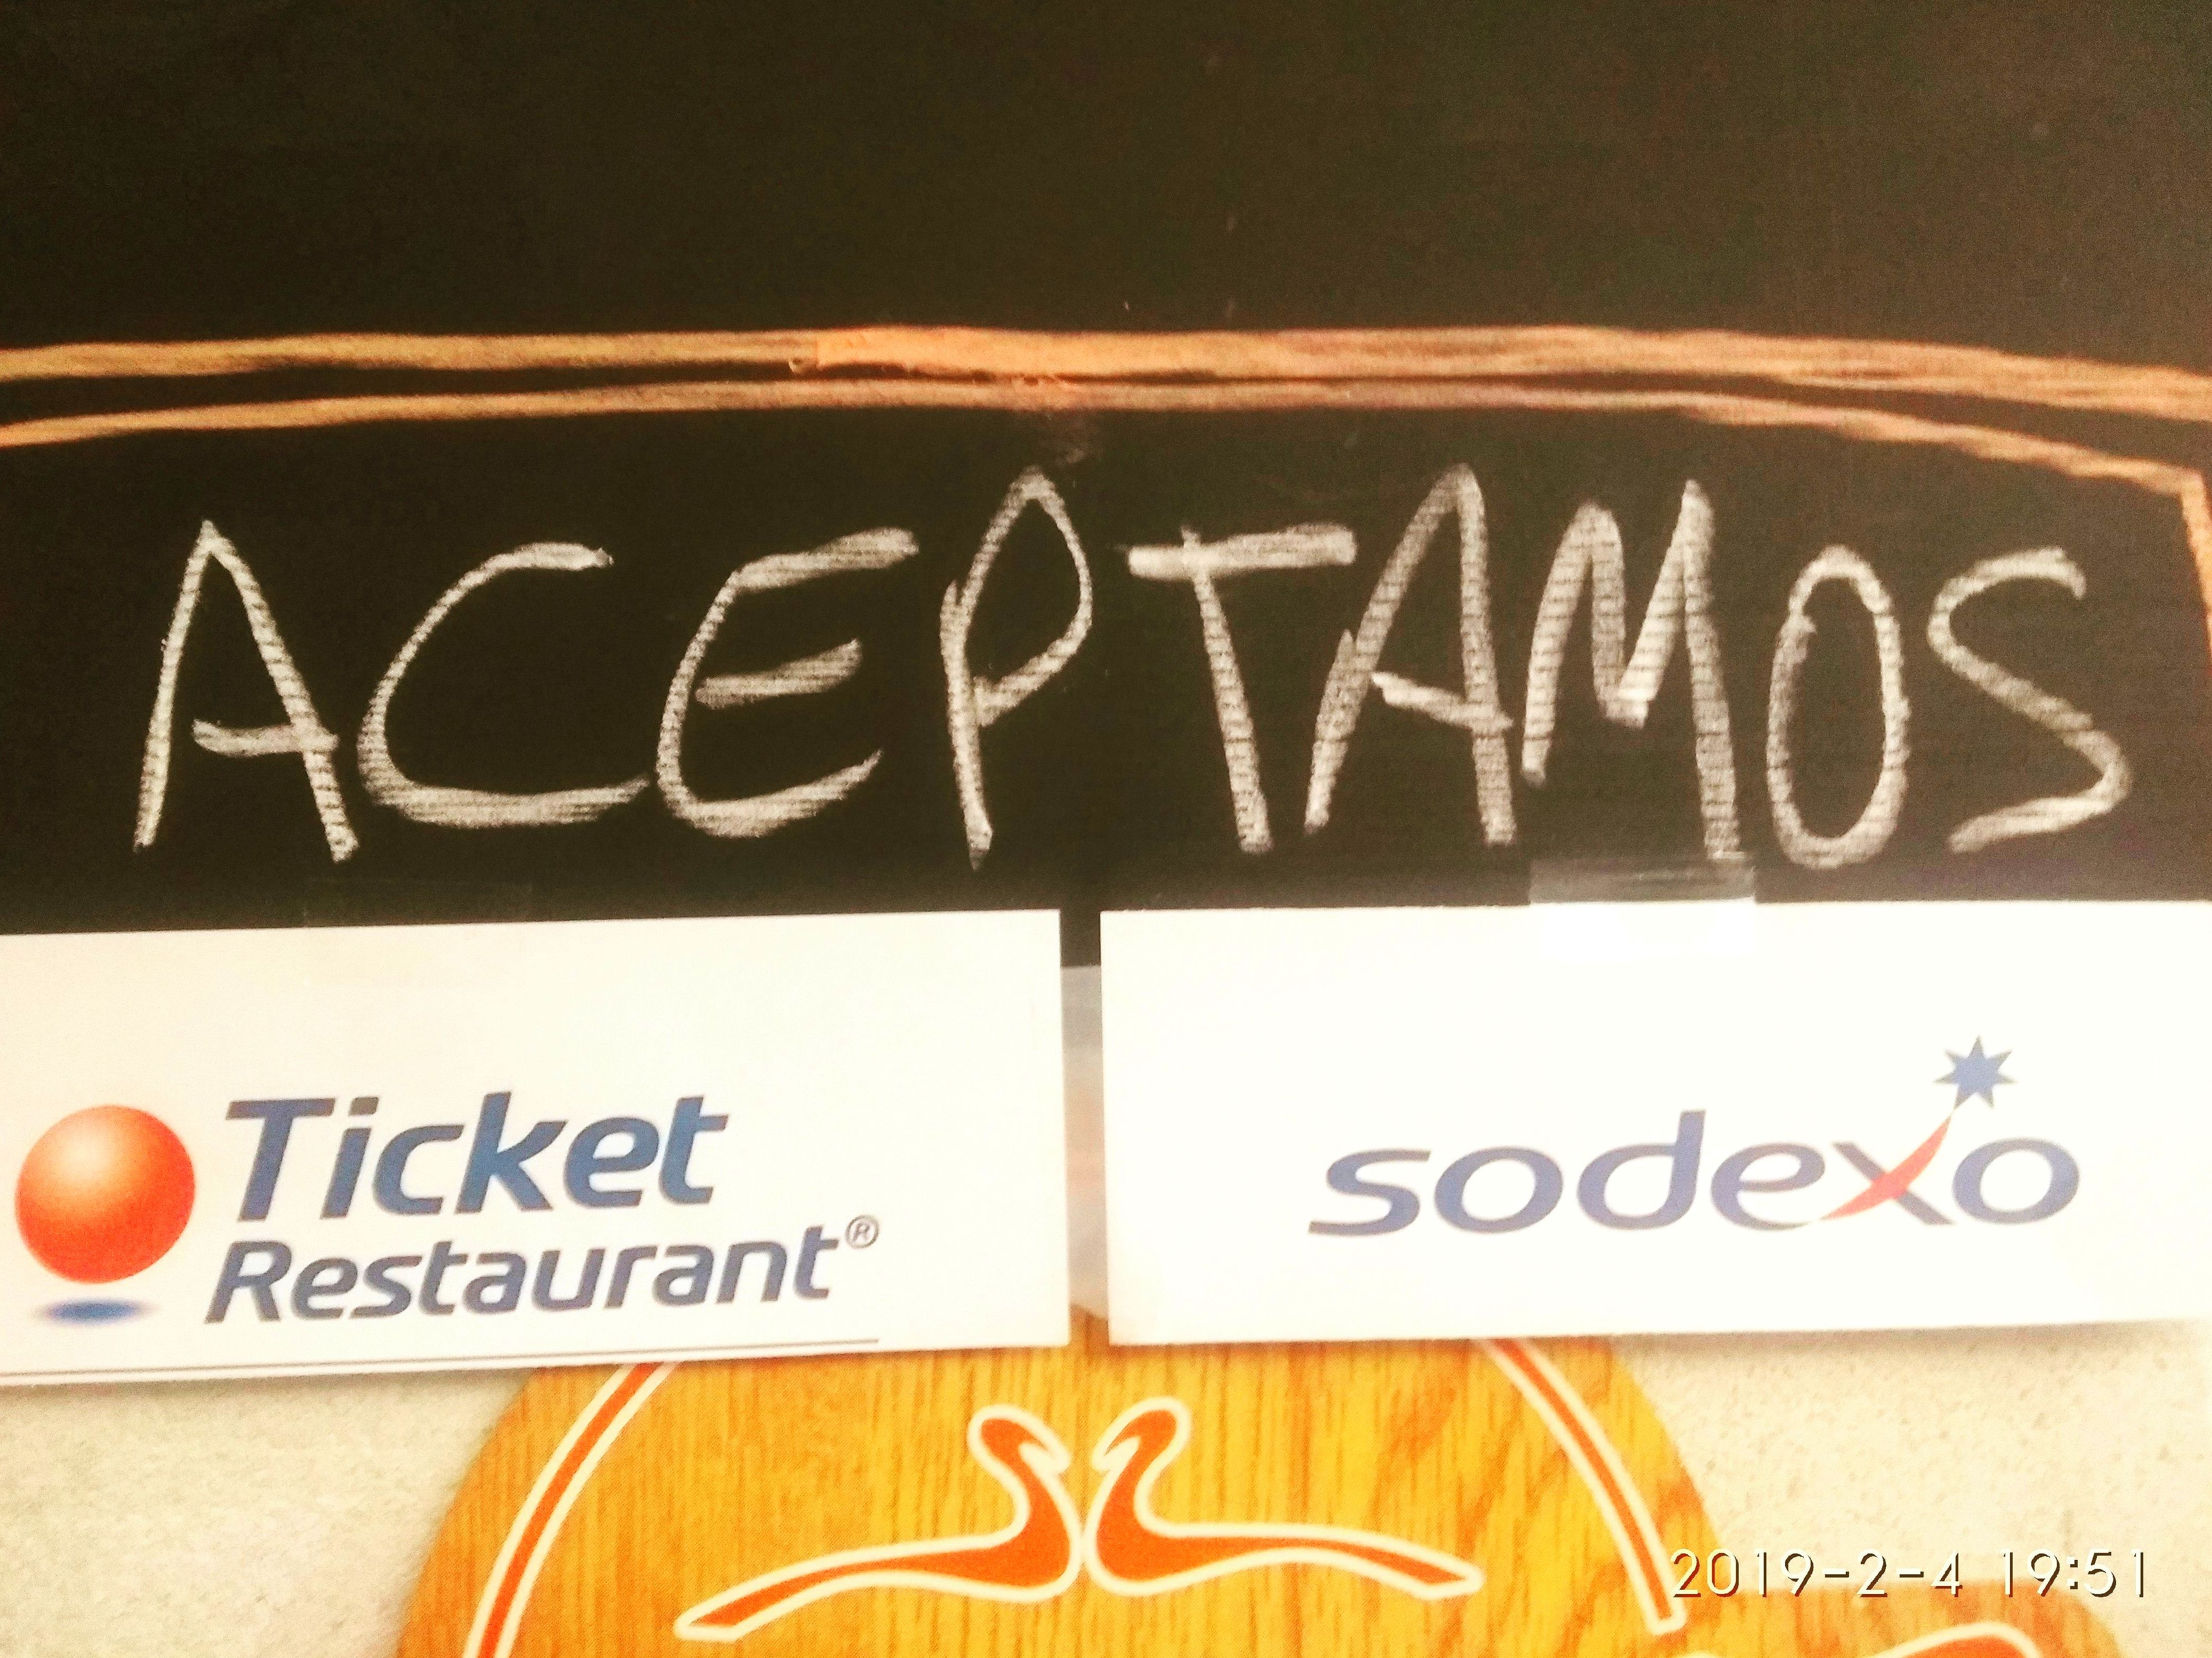 PAGA CON TICKET RESTAURANT Y SODEXO